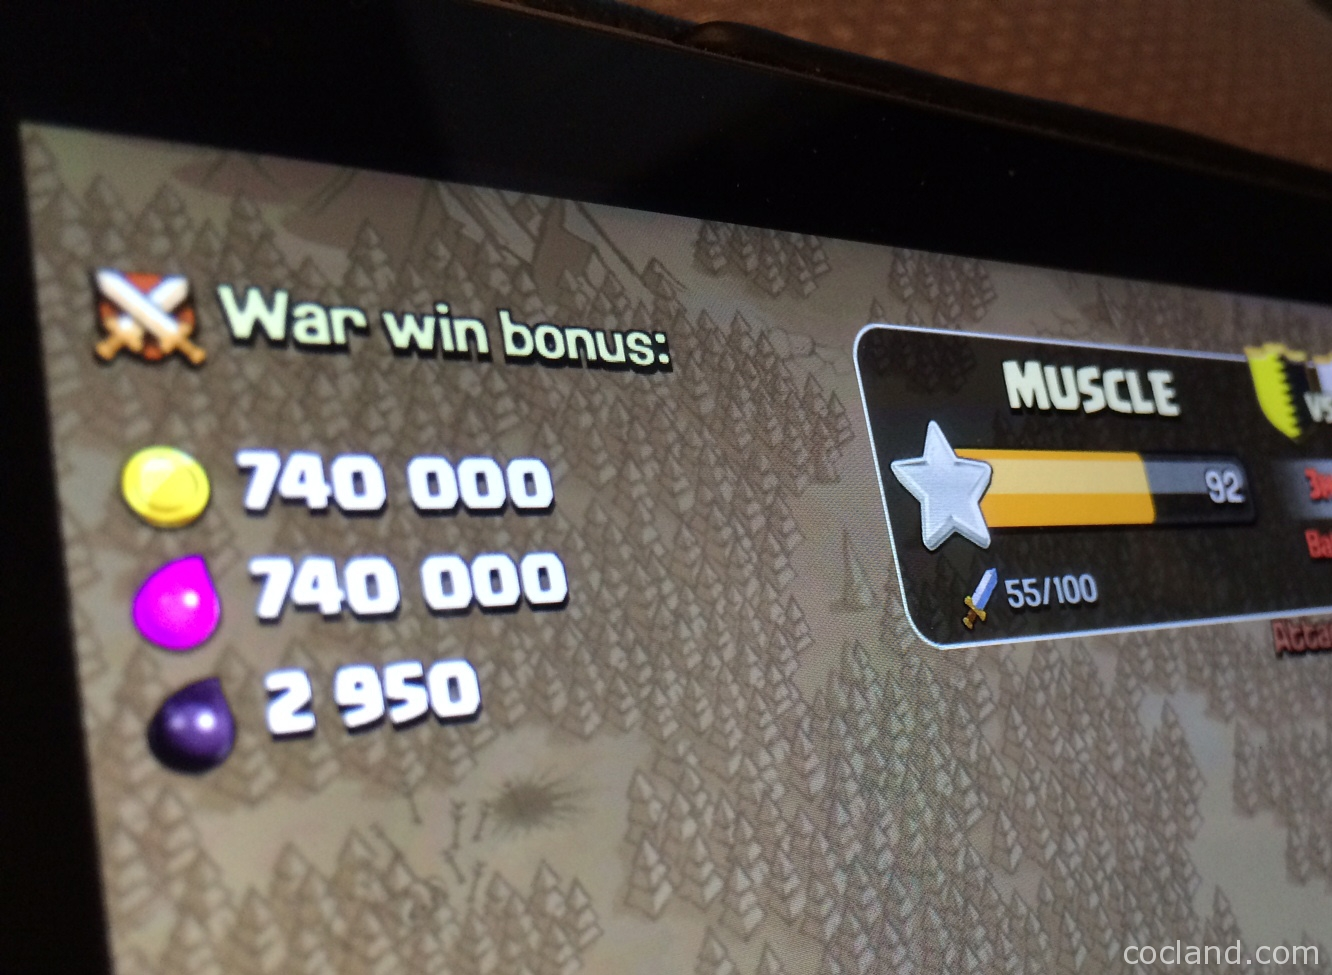 War win bonus